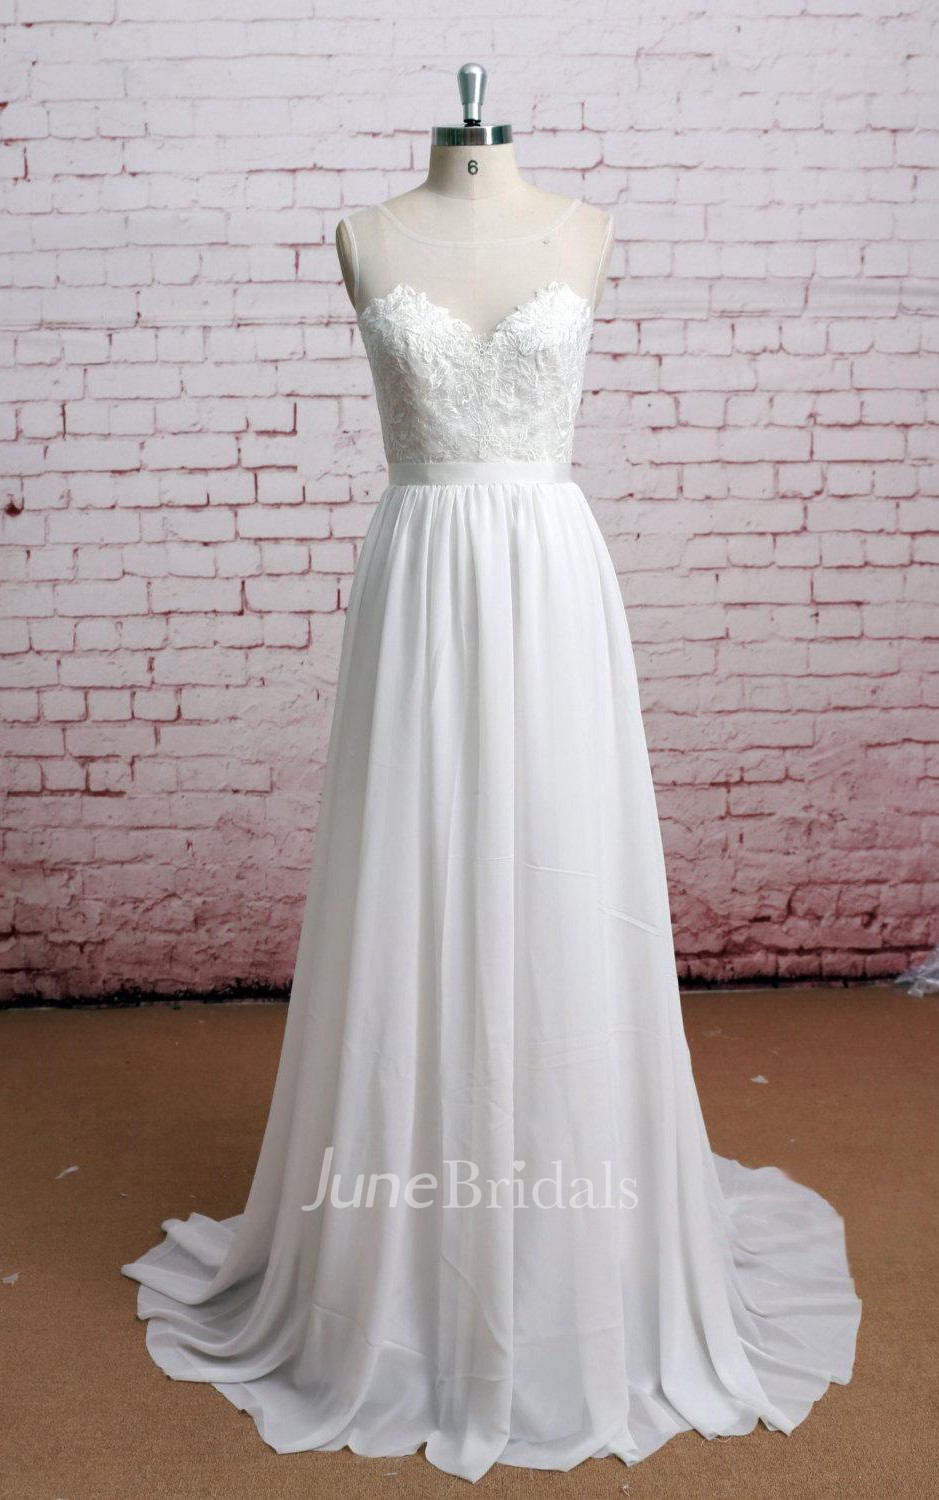 cfac12621ee6 Scoop Neck Sheer Back Long A-Line Chiffon Dress With Lace Bodice - June  Bridals